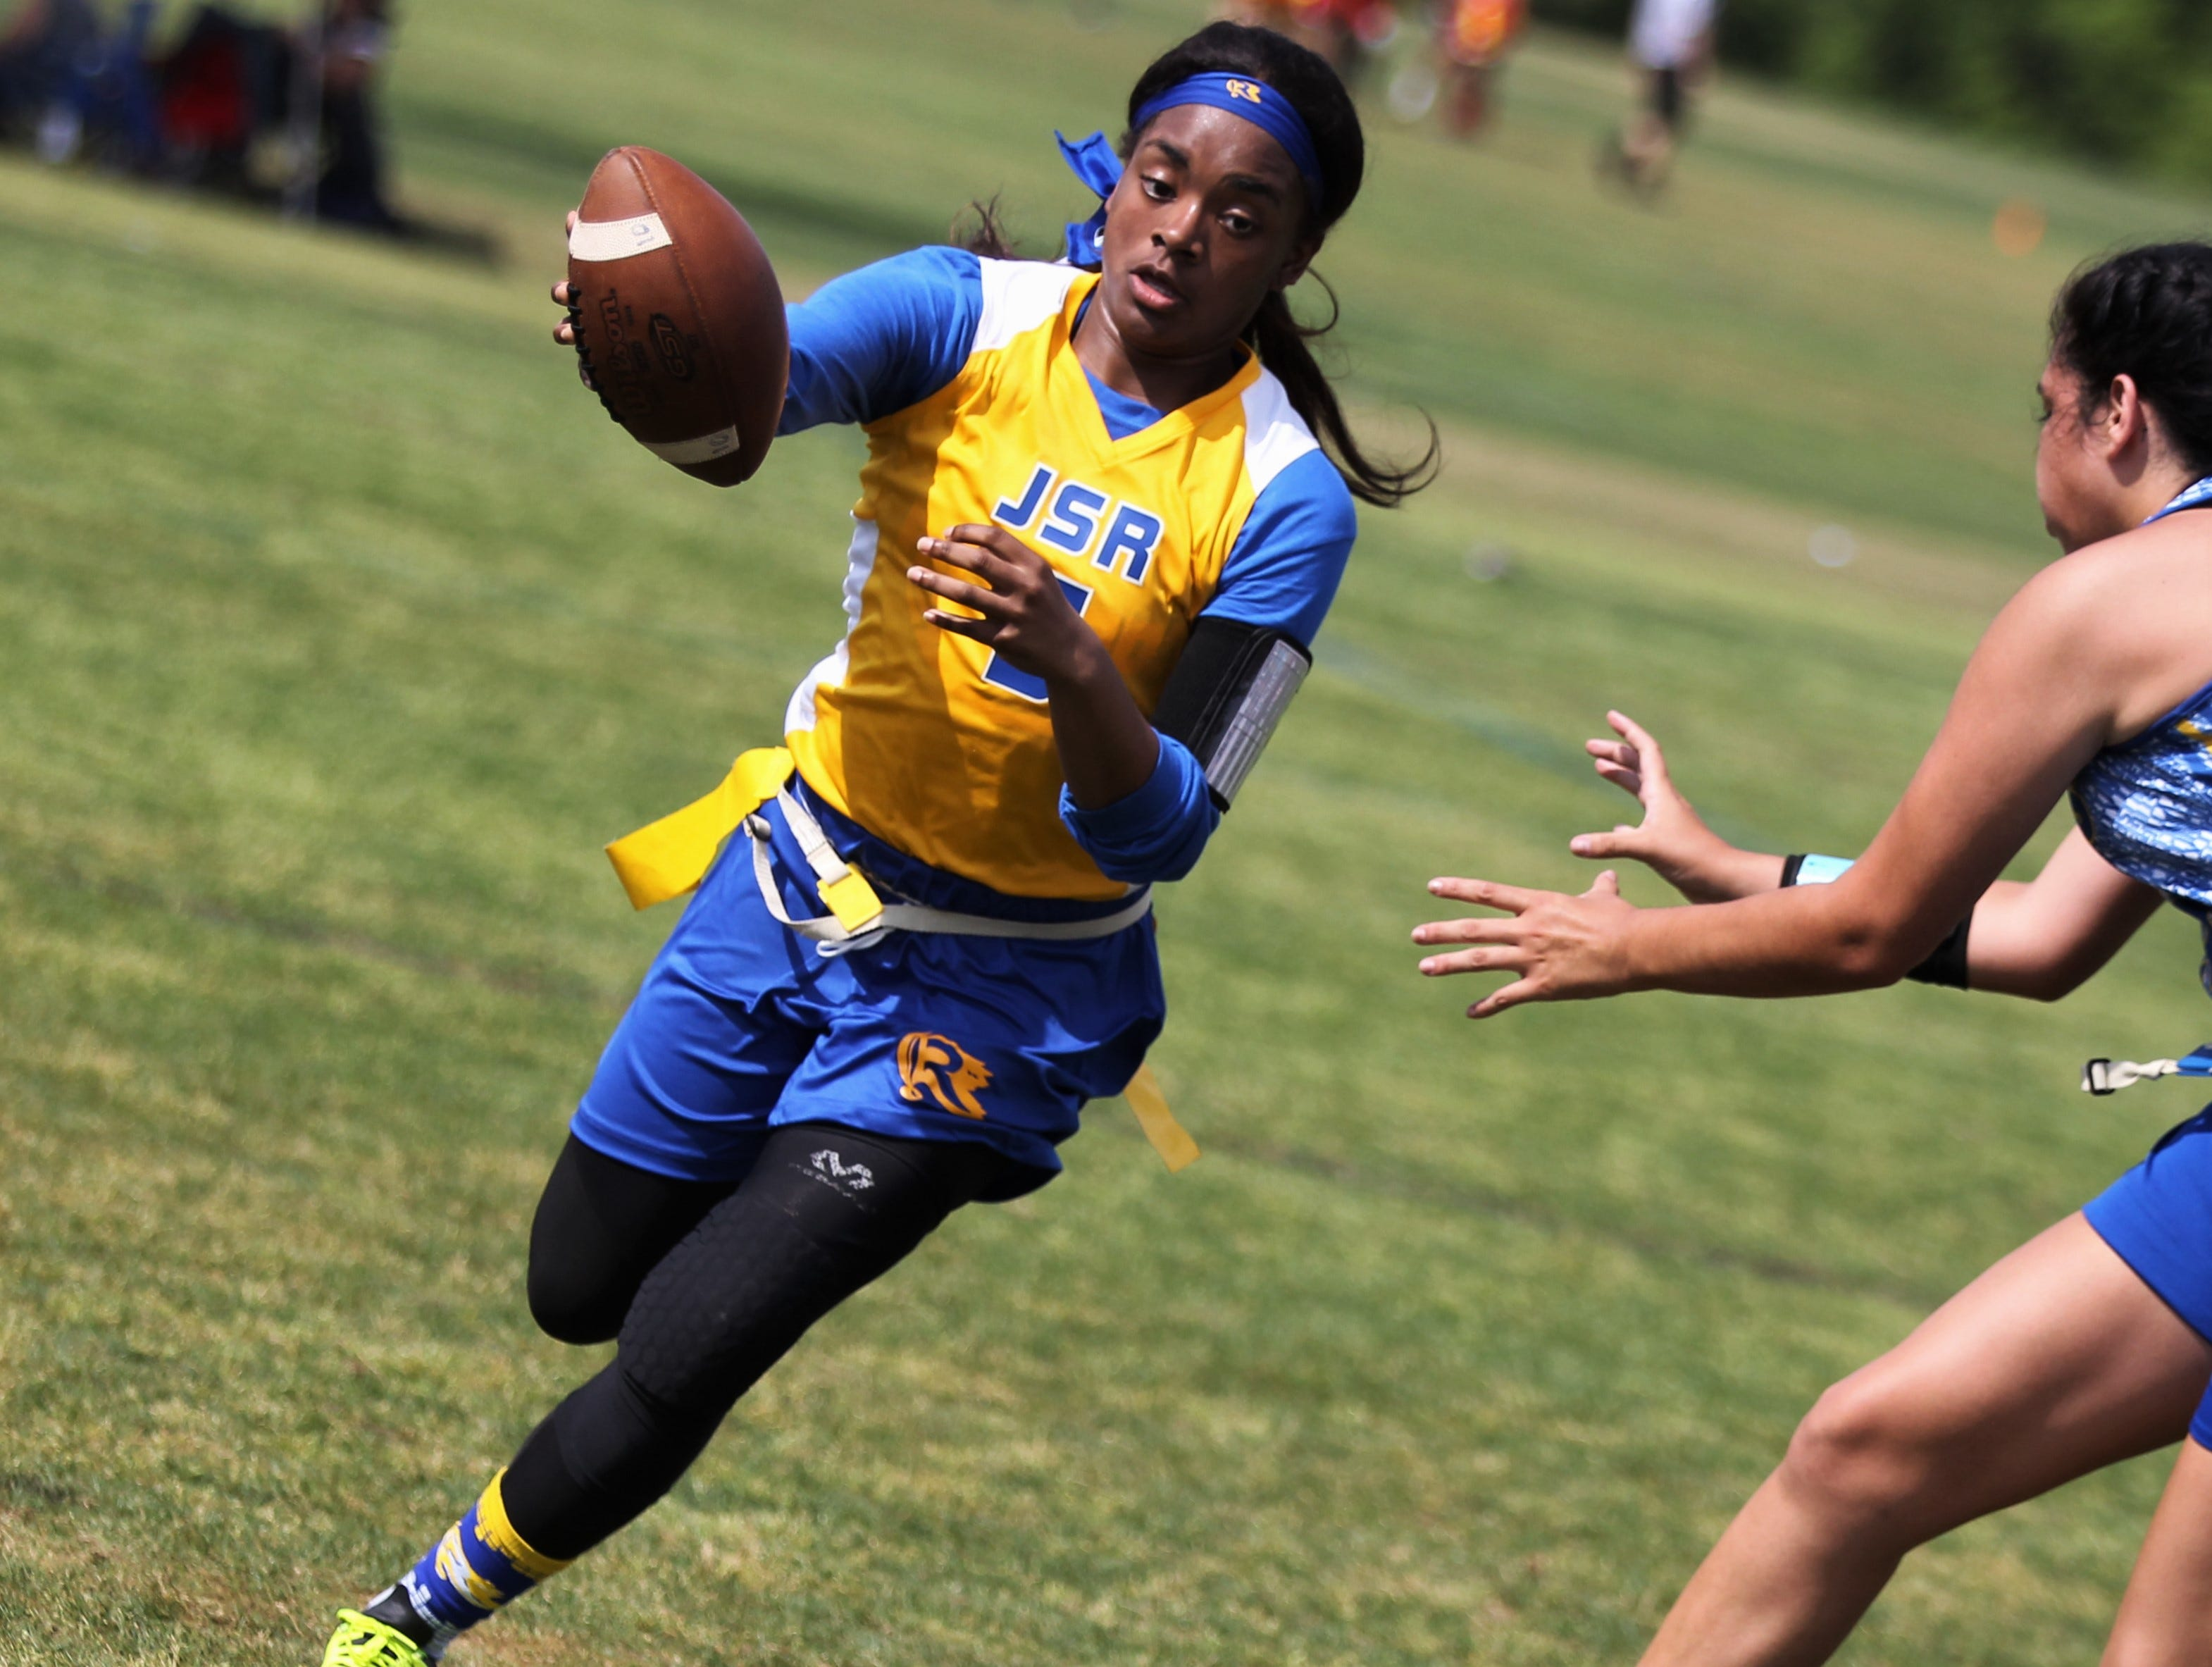 Rickards senior Denia Love runs up field during the 2019 Capital City Classic flag football tournament at the FSU Rec SportsPlex on April 6, 2019.